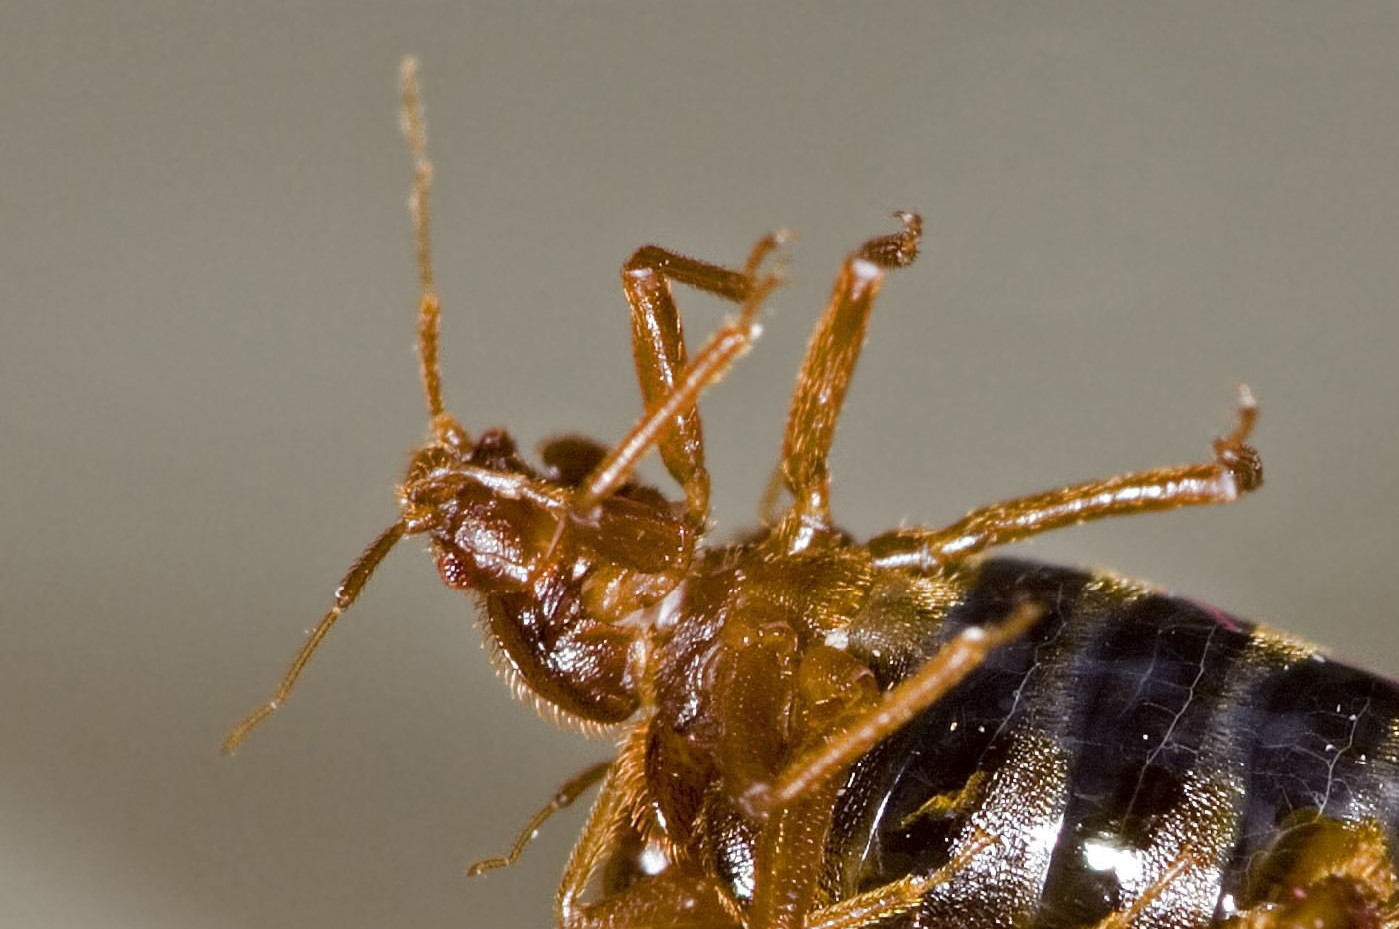 Do bed bugs fly or jump